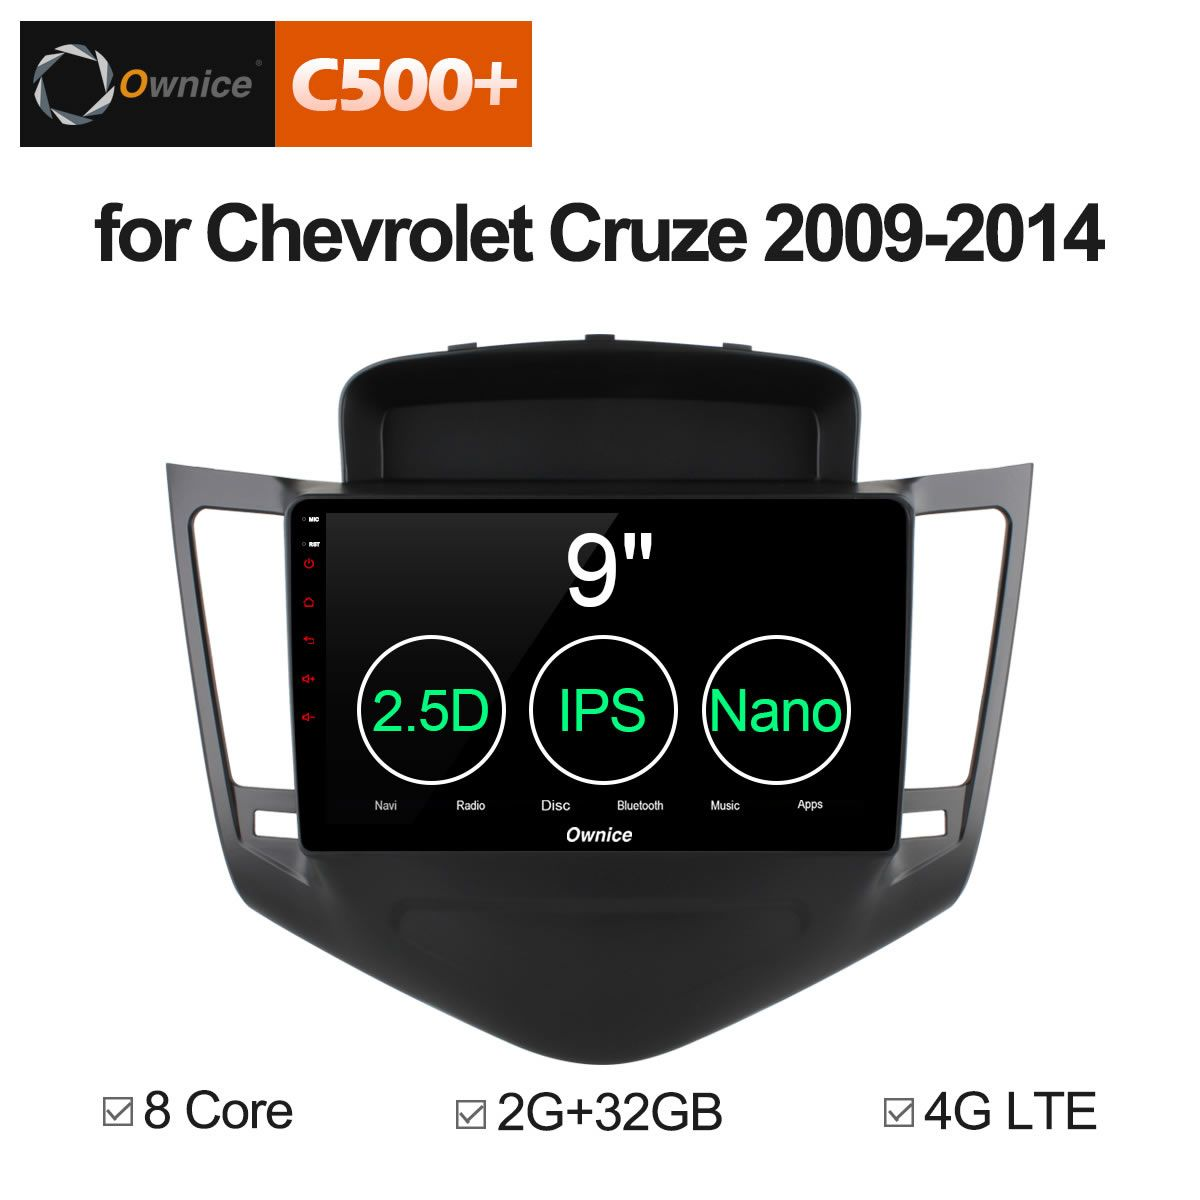 Ownice C500+ G10 2 din touch screen Android 8.1 car dvd gps for Chevrolet Cruze 2009 - 2014 eight core 2G RAM 32G ROM Support 4G